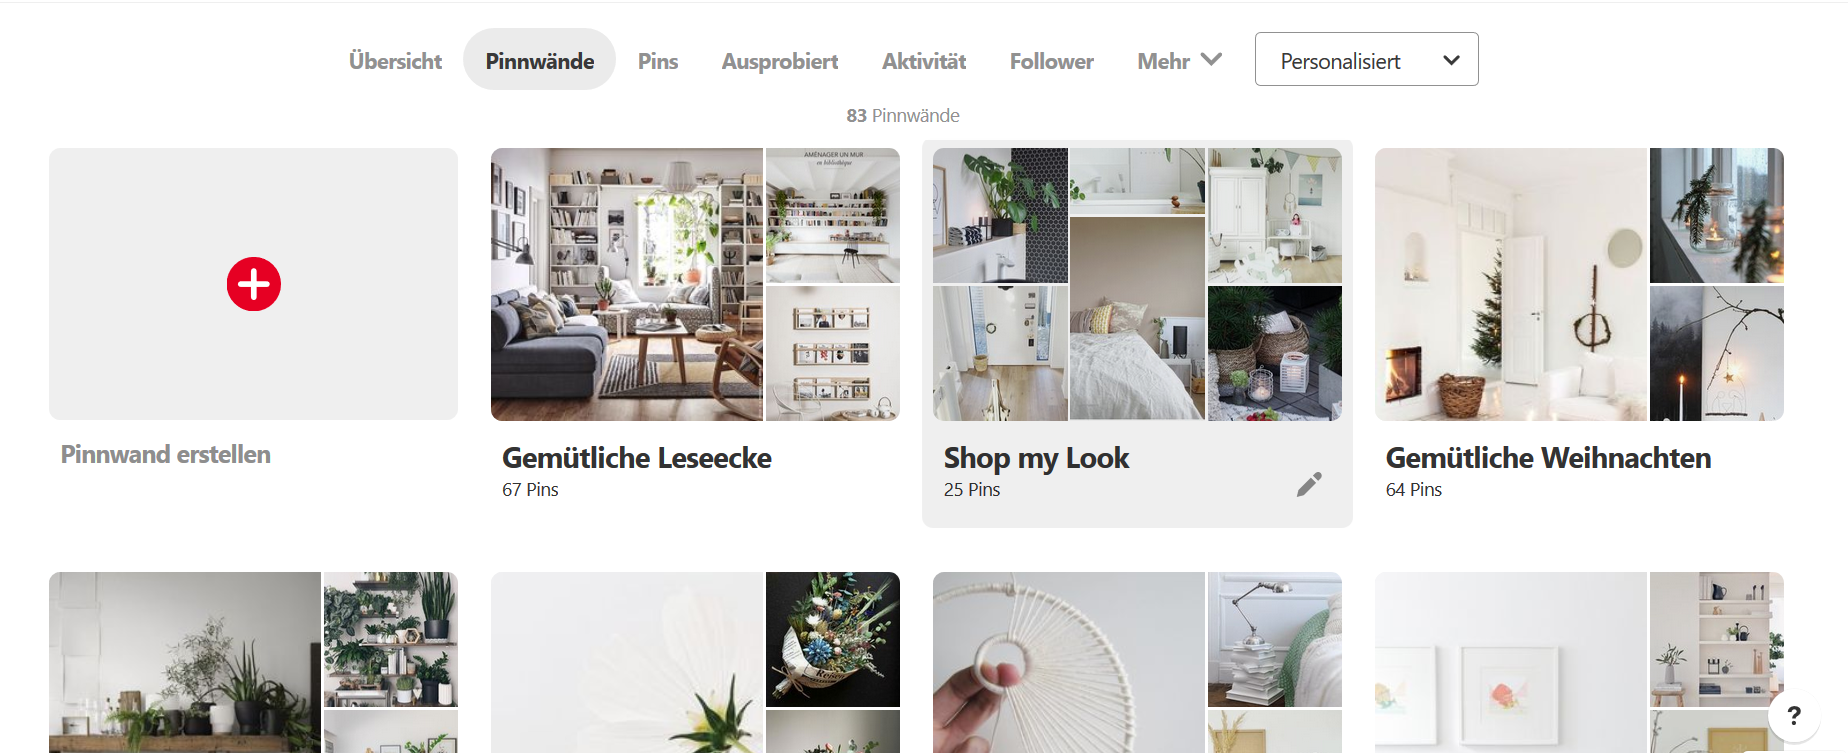 Neu auf Pinterest: Die Shop-The-Look Funktion mit shoppable Pins | mammilade.com